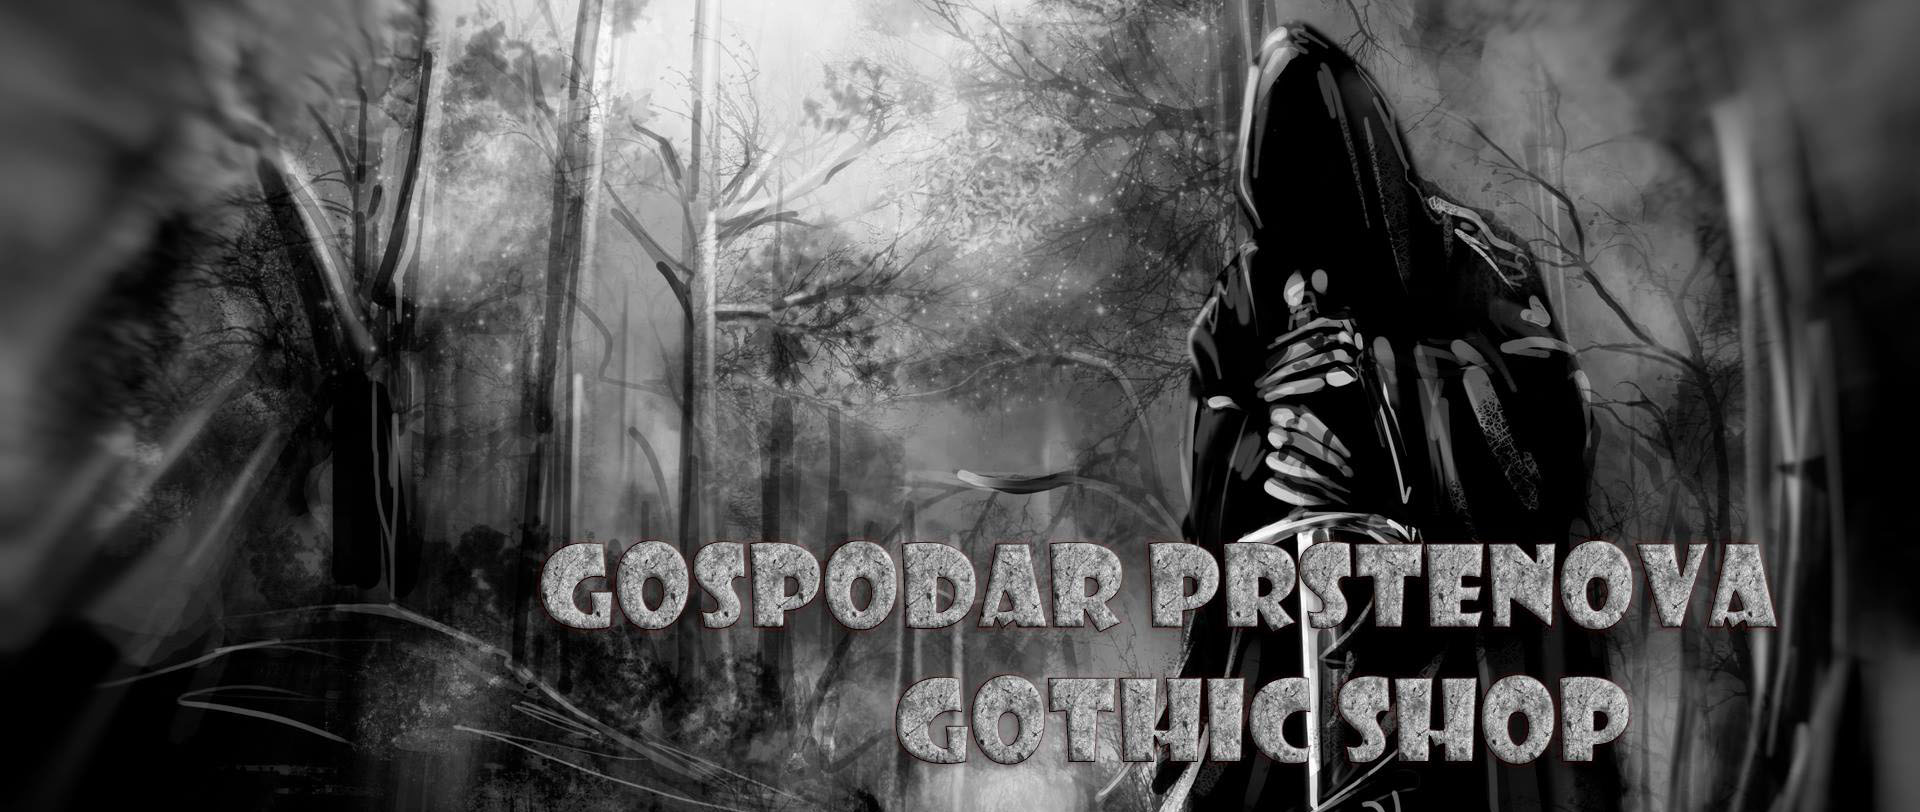 Gospodar Prstenova gothic rock shop